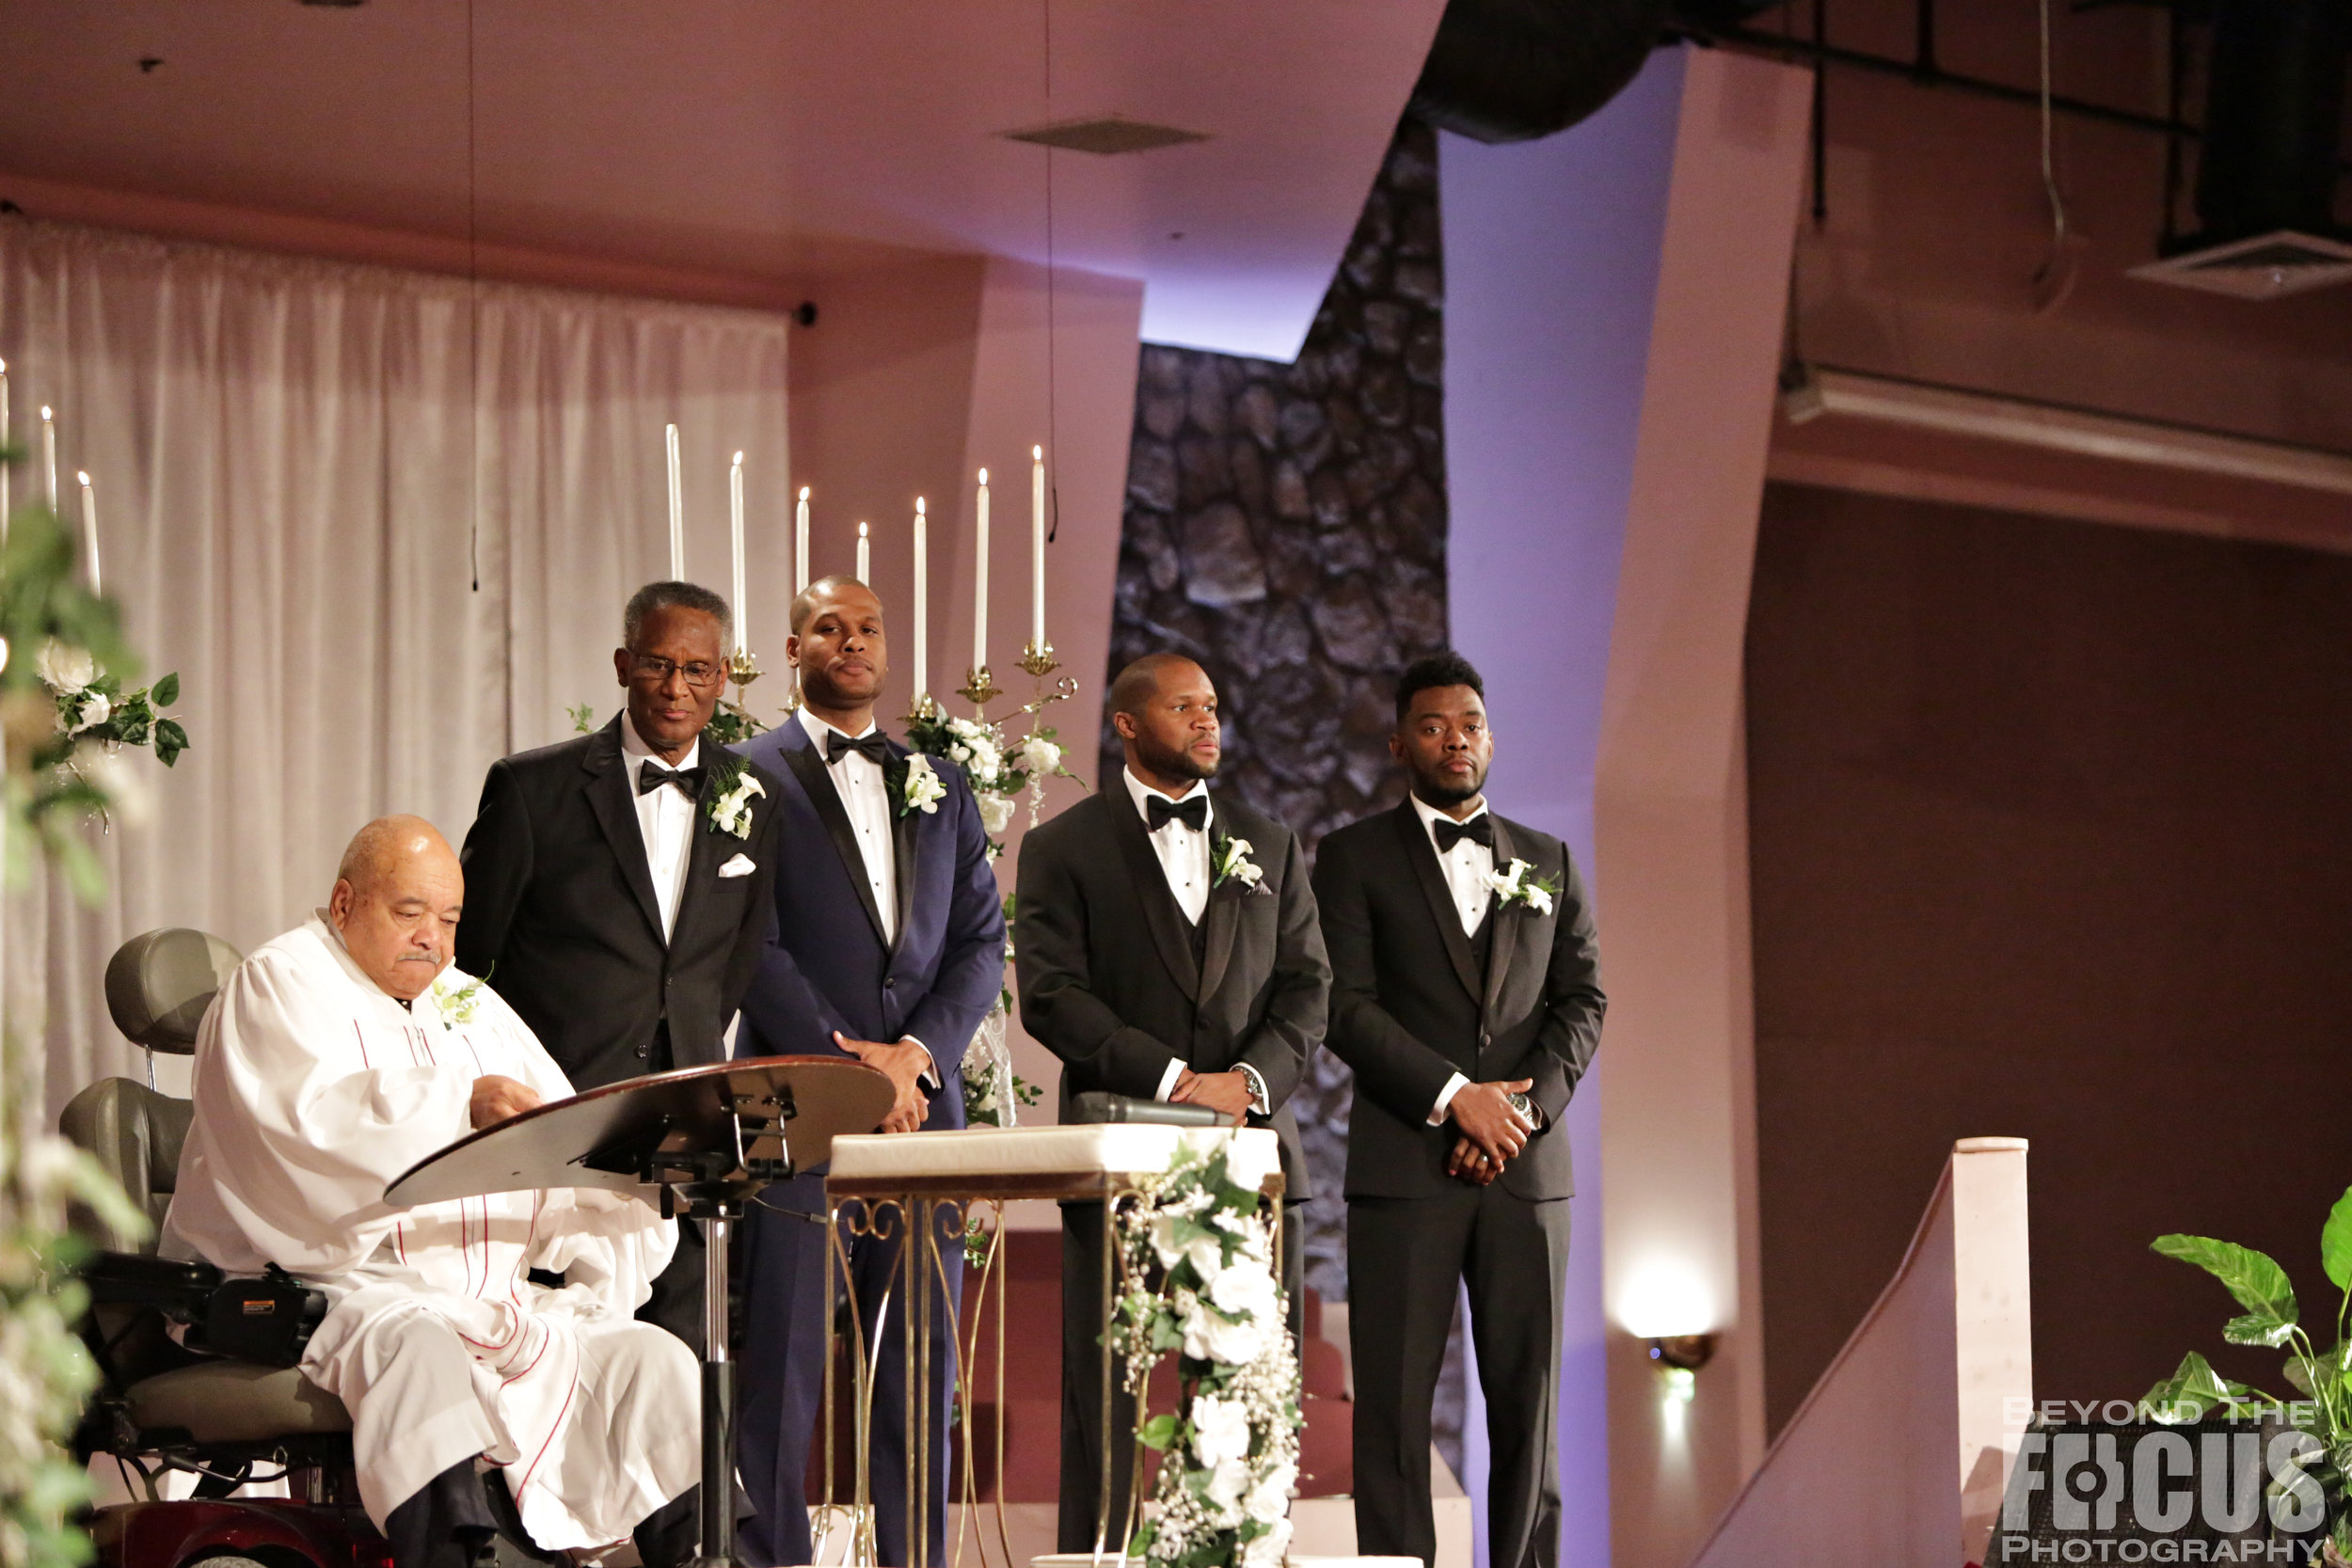 Matthews_Wedding_Ceremony_15.jpg